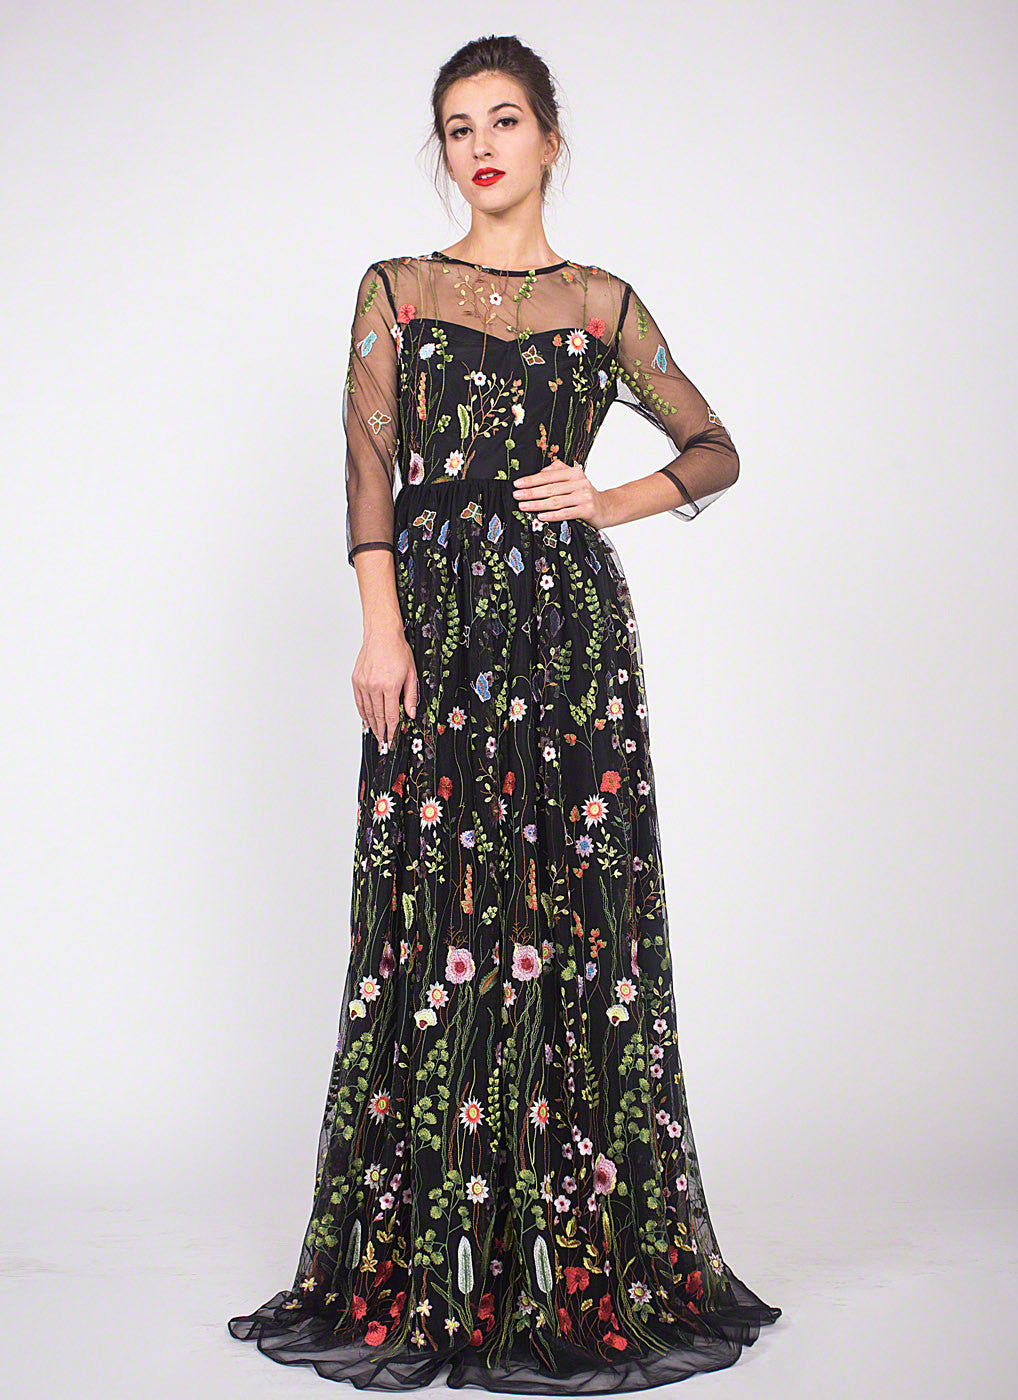 Black Tulle Floor Length Dress with Colorful Floral Embroidery ...